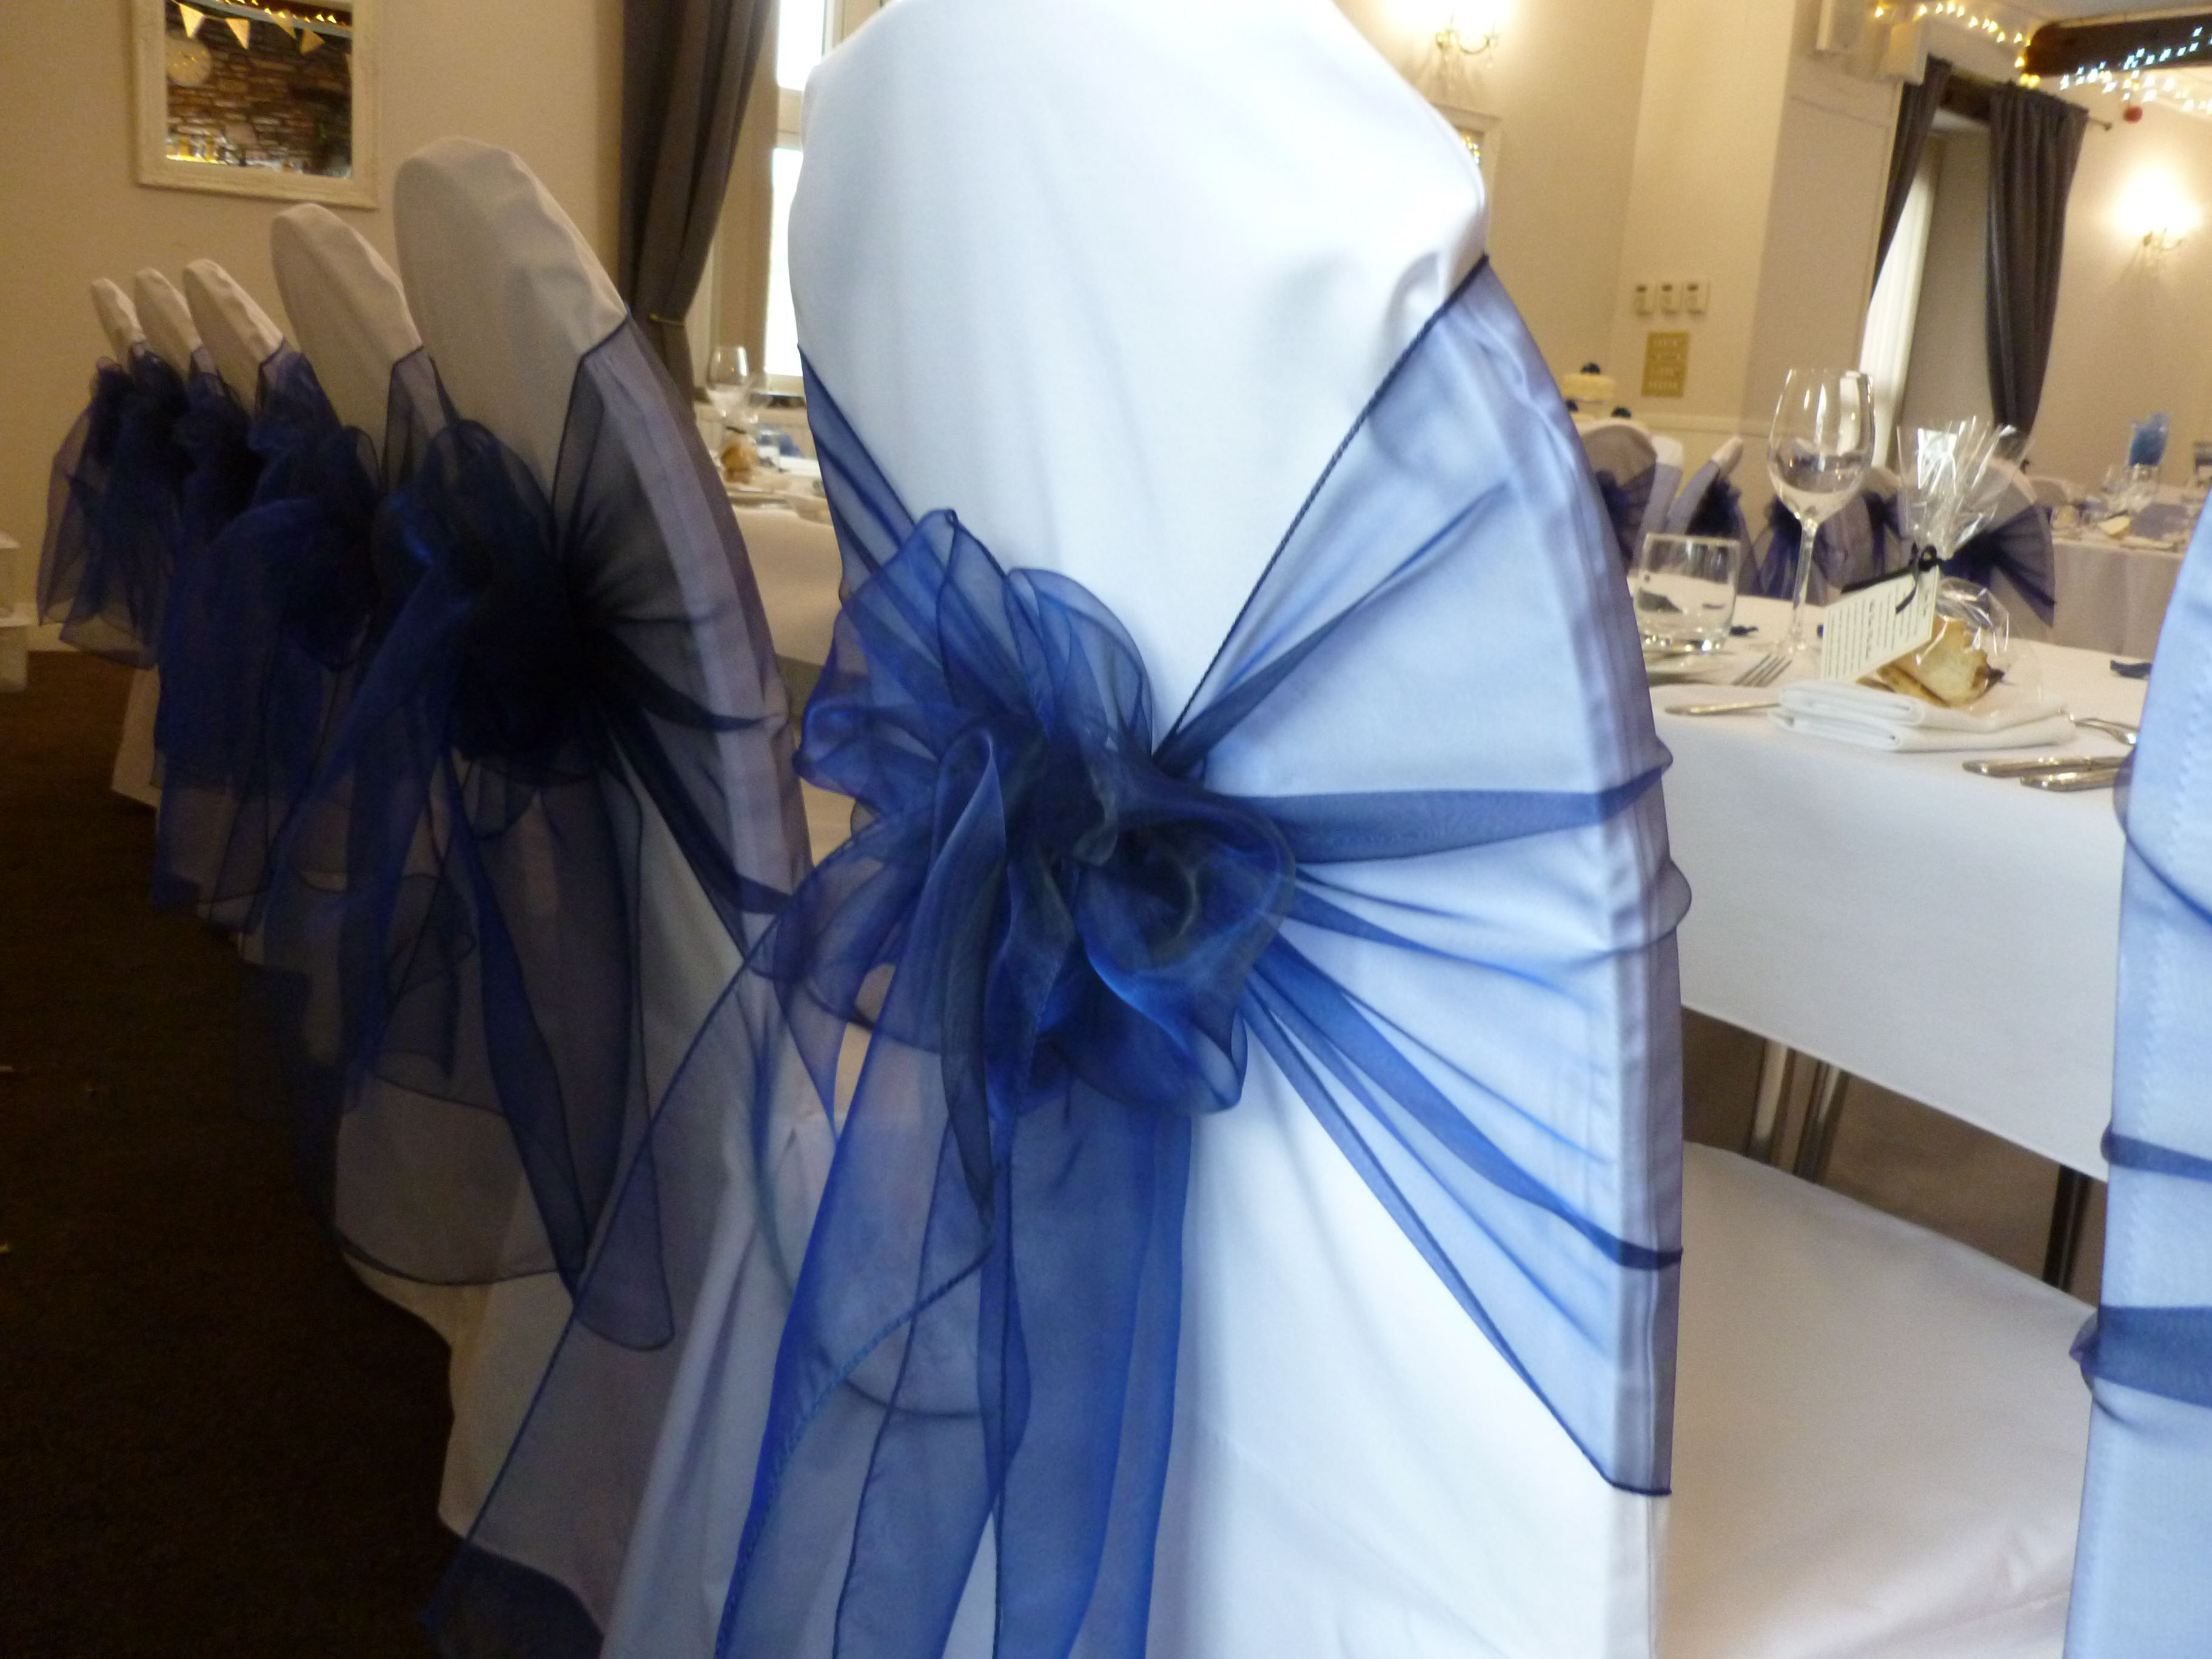 Chair Cover Hire South Wales Office Gaming Chairs Navy Organza Sash Dressed By Simply Bows And Covers